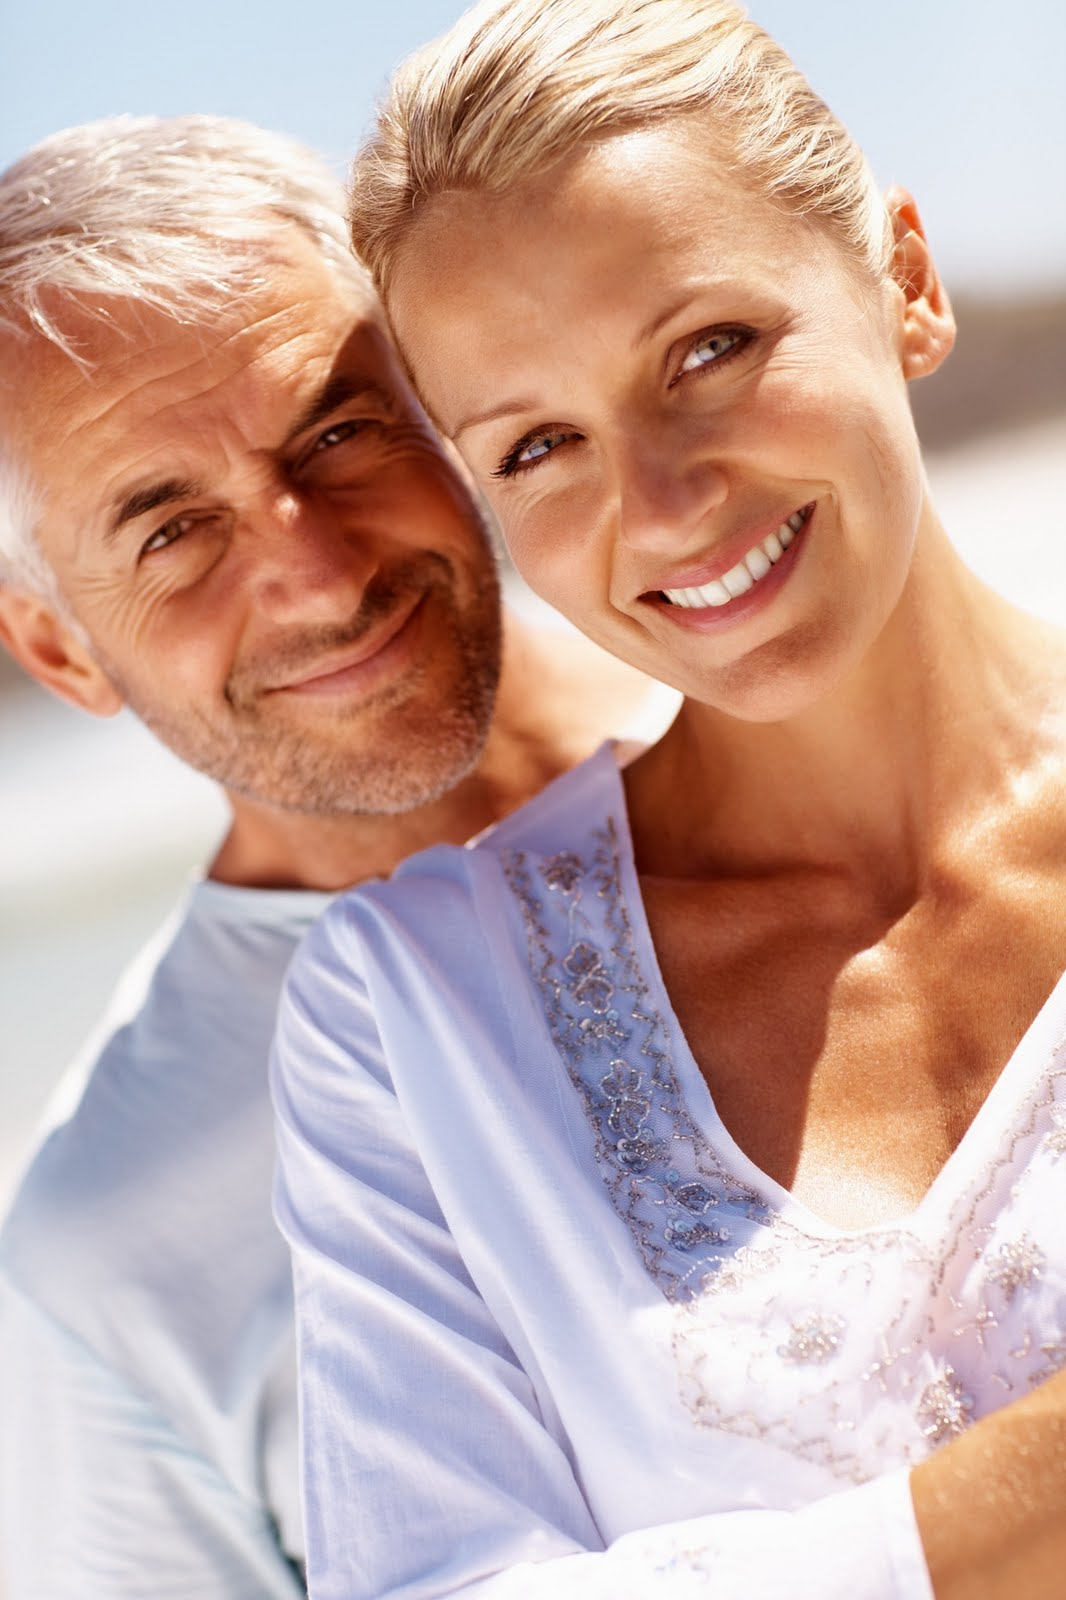 debord single women over 50 Search for local single 50+ women search pictures and profiles of 50+ singles near you right now discover how online dating sites make finding singles in the united states, canada, and all over the world simple, safe and fun.